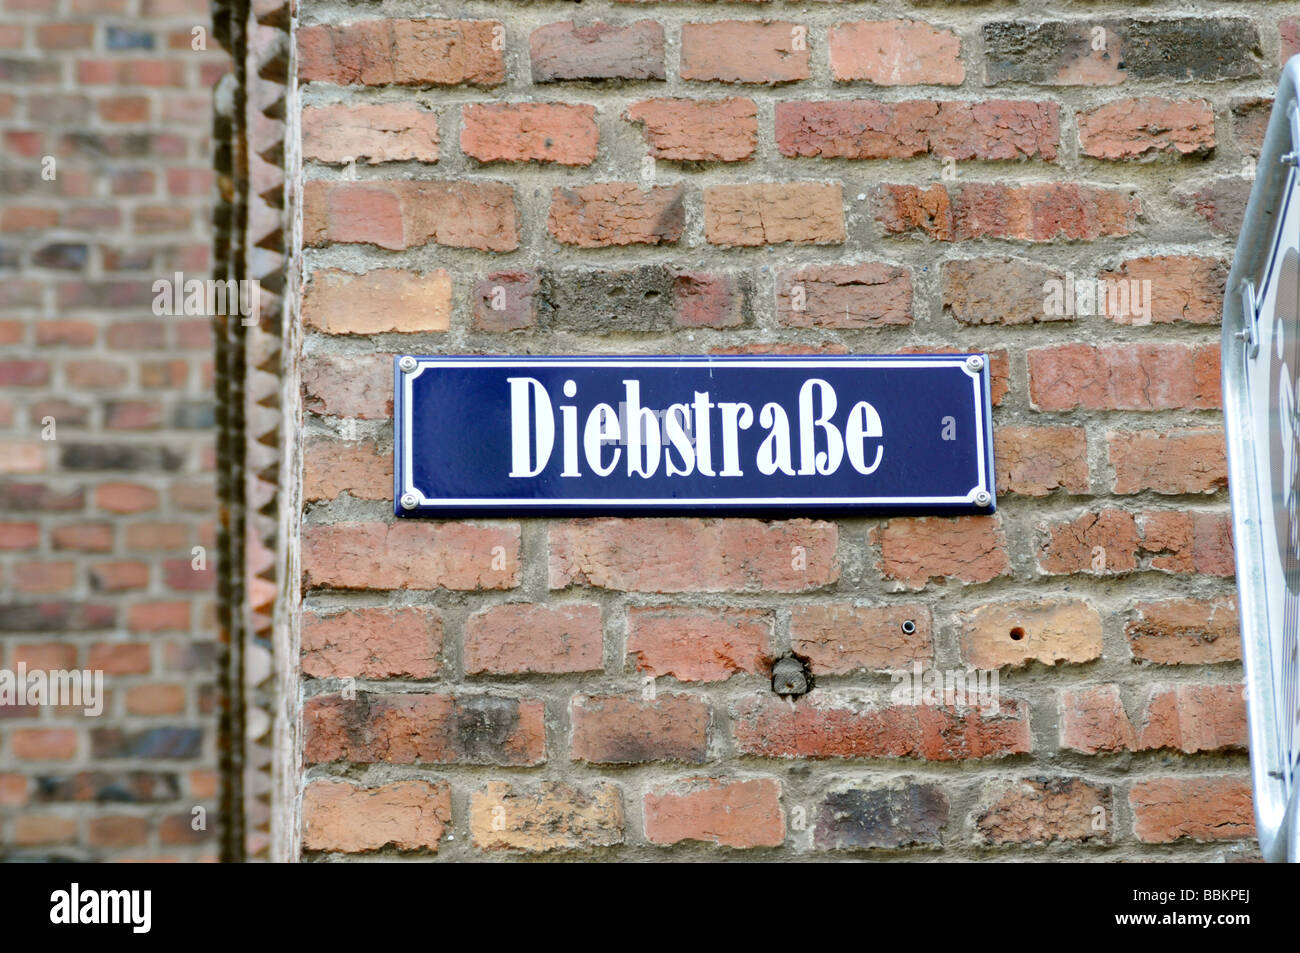 Street sign Diebstrasse, Wismar old town, Wismar, Mecklenburg-Western Pomerania, Germany, Europe - Stock Image